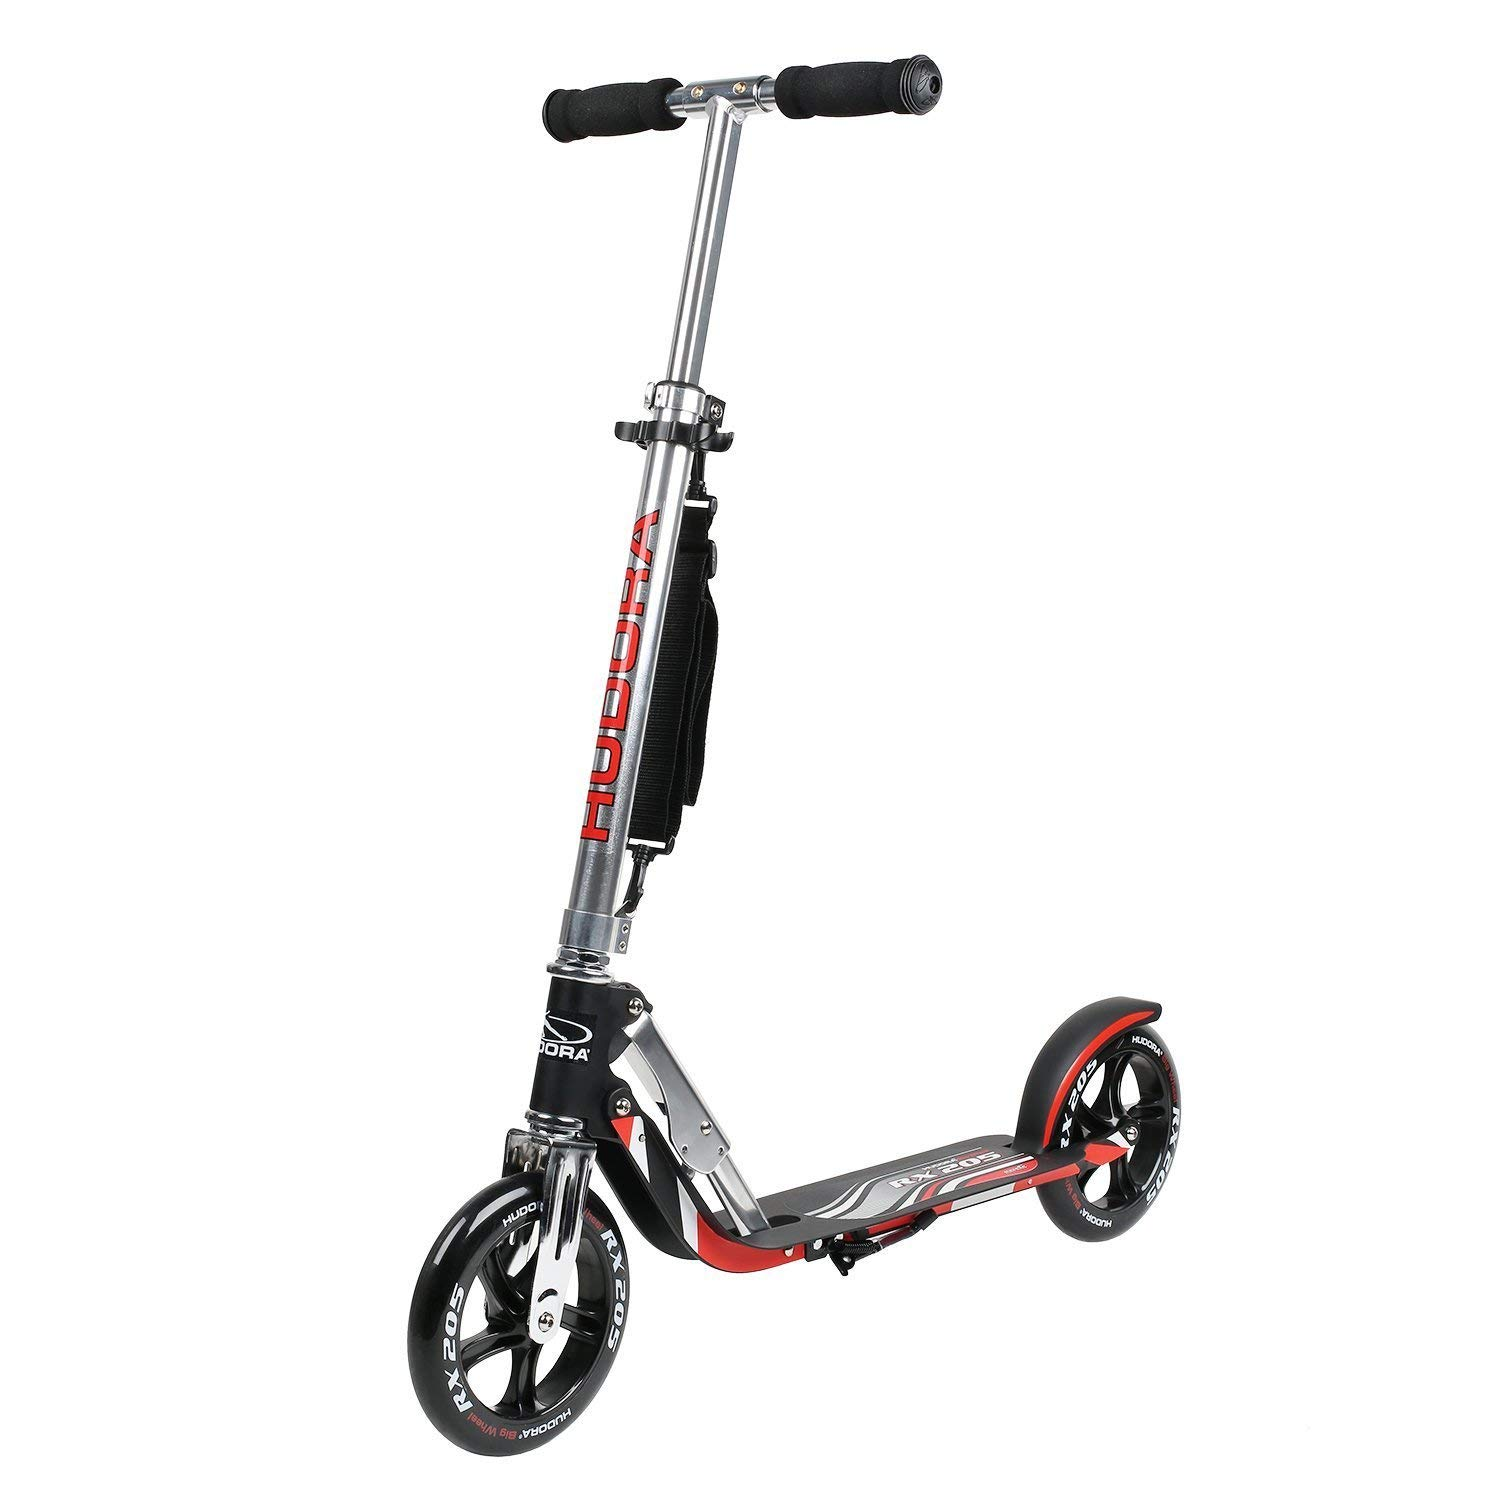 HUDORA 205 Self-Powered Kick Scooter for Adults Teens with Two PU Wheels Folding Mechanism Adjustable Height Rear Brake Non-Electric Glider Scooter by HUDORA